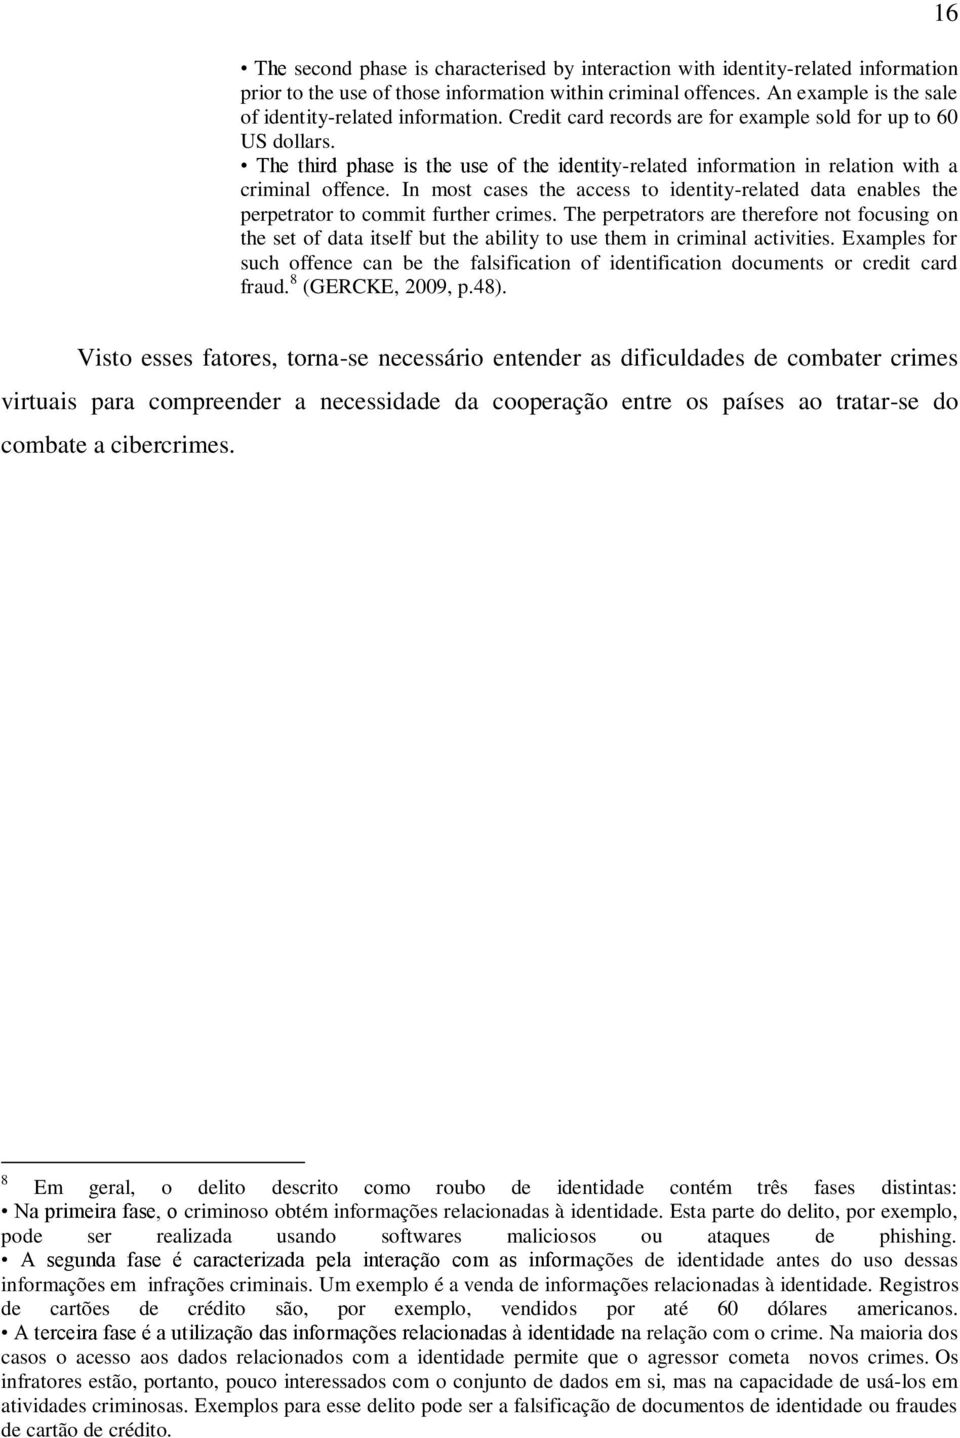 The third phase is the use of the identity-related information in relation with a criminal offence. In most cases the access to identity-related data enables the perpetrator to commit further crimes.